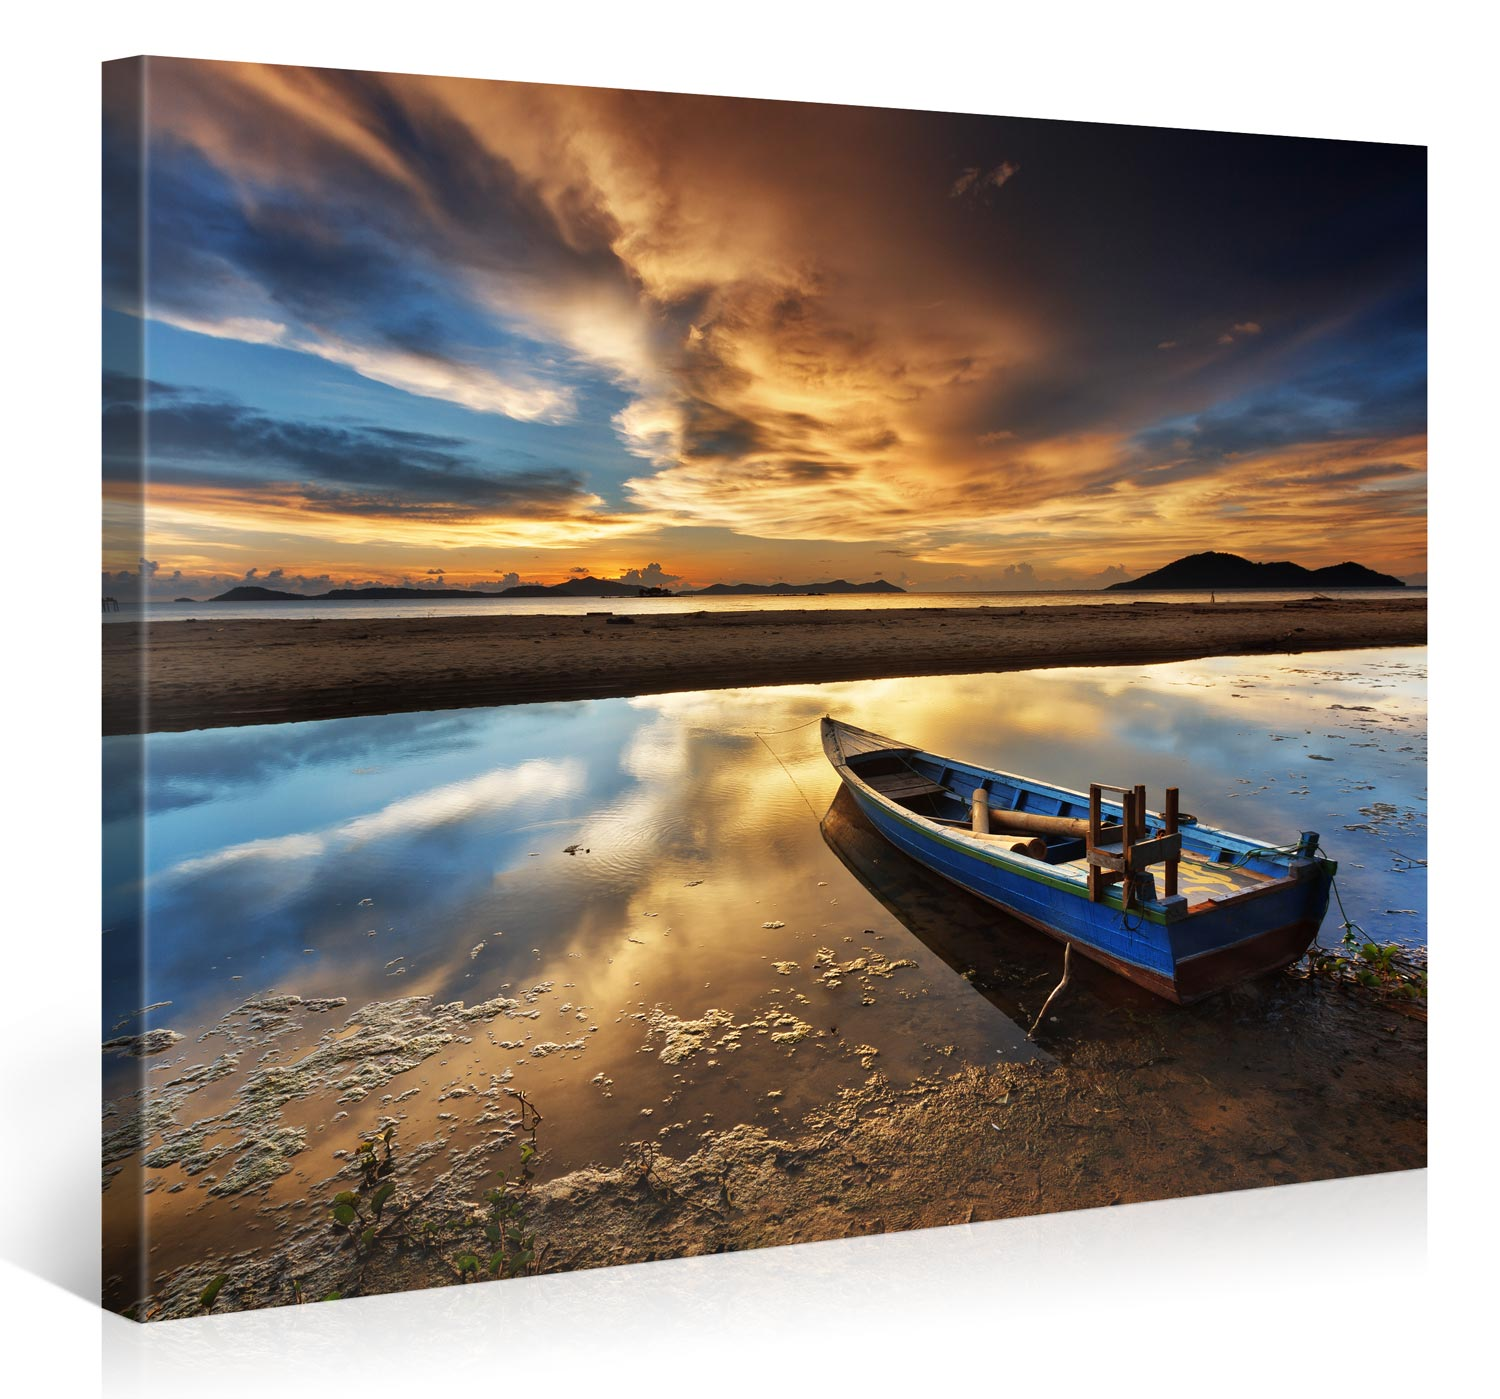 BOAT ON BEACH, ASIA SUNSET - 100x75cm -  #e6369